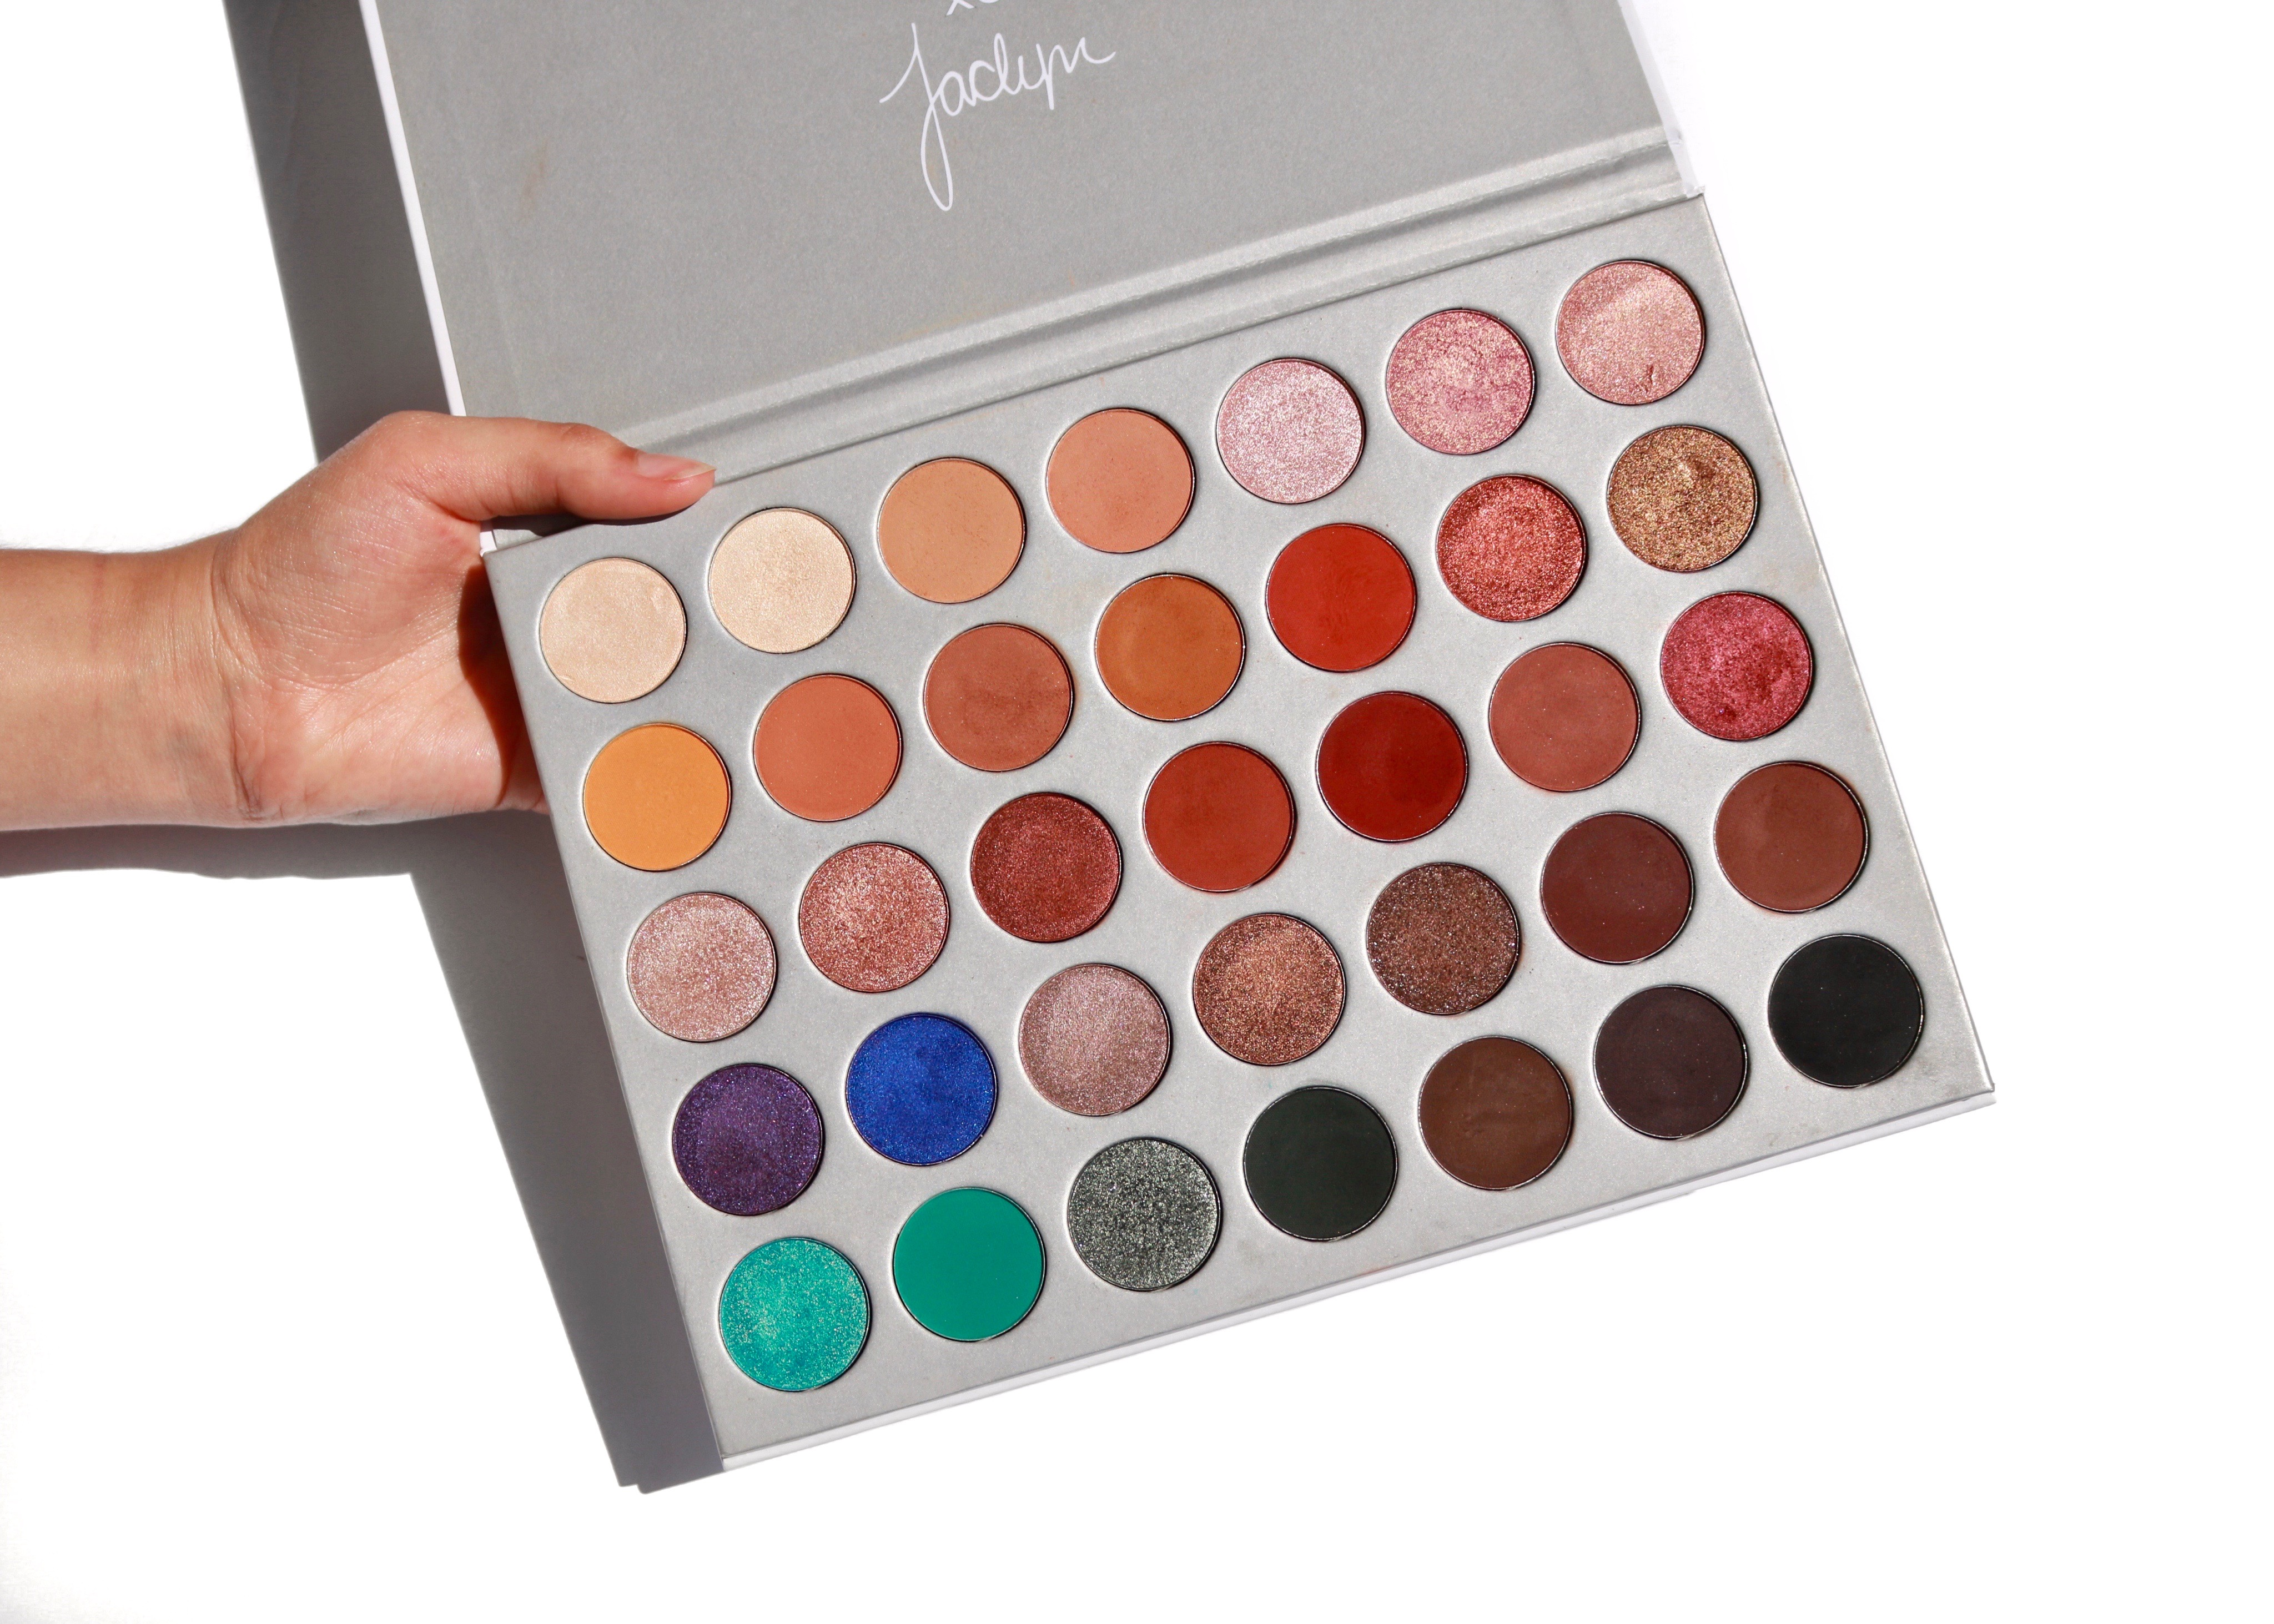 The Jaclyn Hill Eyeshadow Palette Swatches